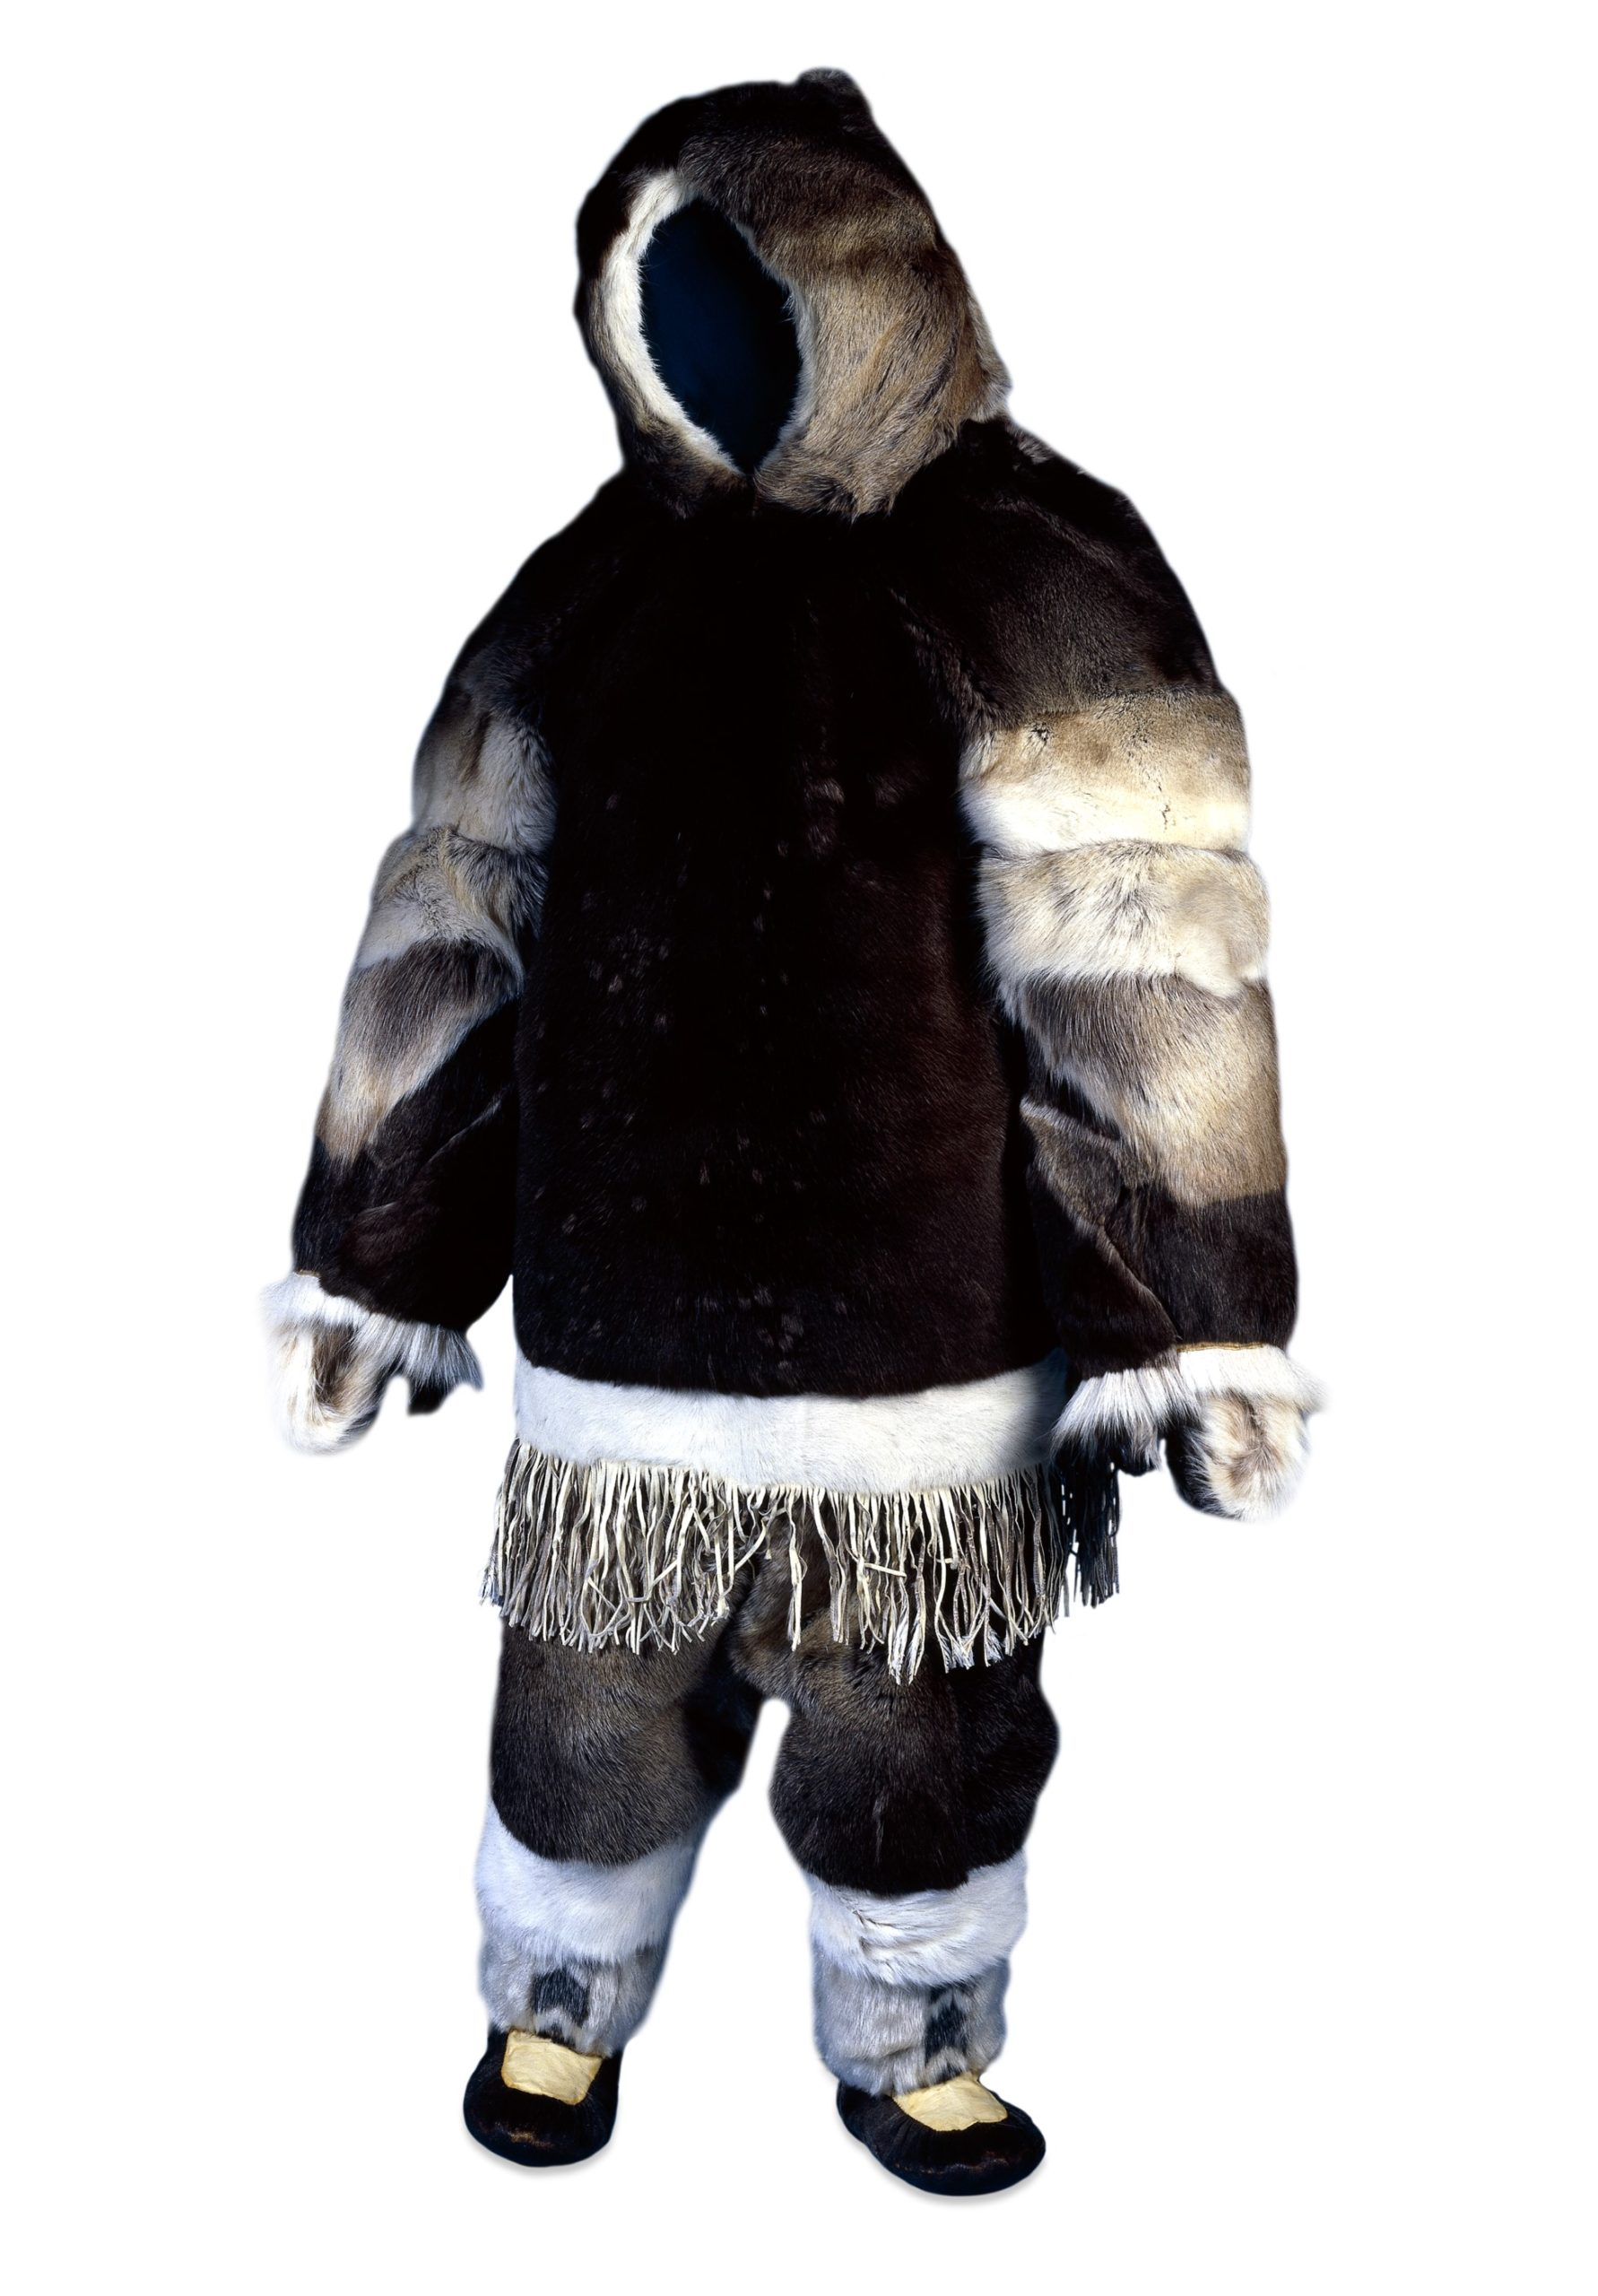 Outer parka (part of costume) made of caribou fur. The body is a very dark brown and the fur is light grey on the sleeves. It has a hood. which is lined with white fur. The bottom of the jacket is trimmed with white fur and has fringing. The trousers are made from brown fur and boots are grey and white fur.